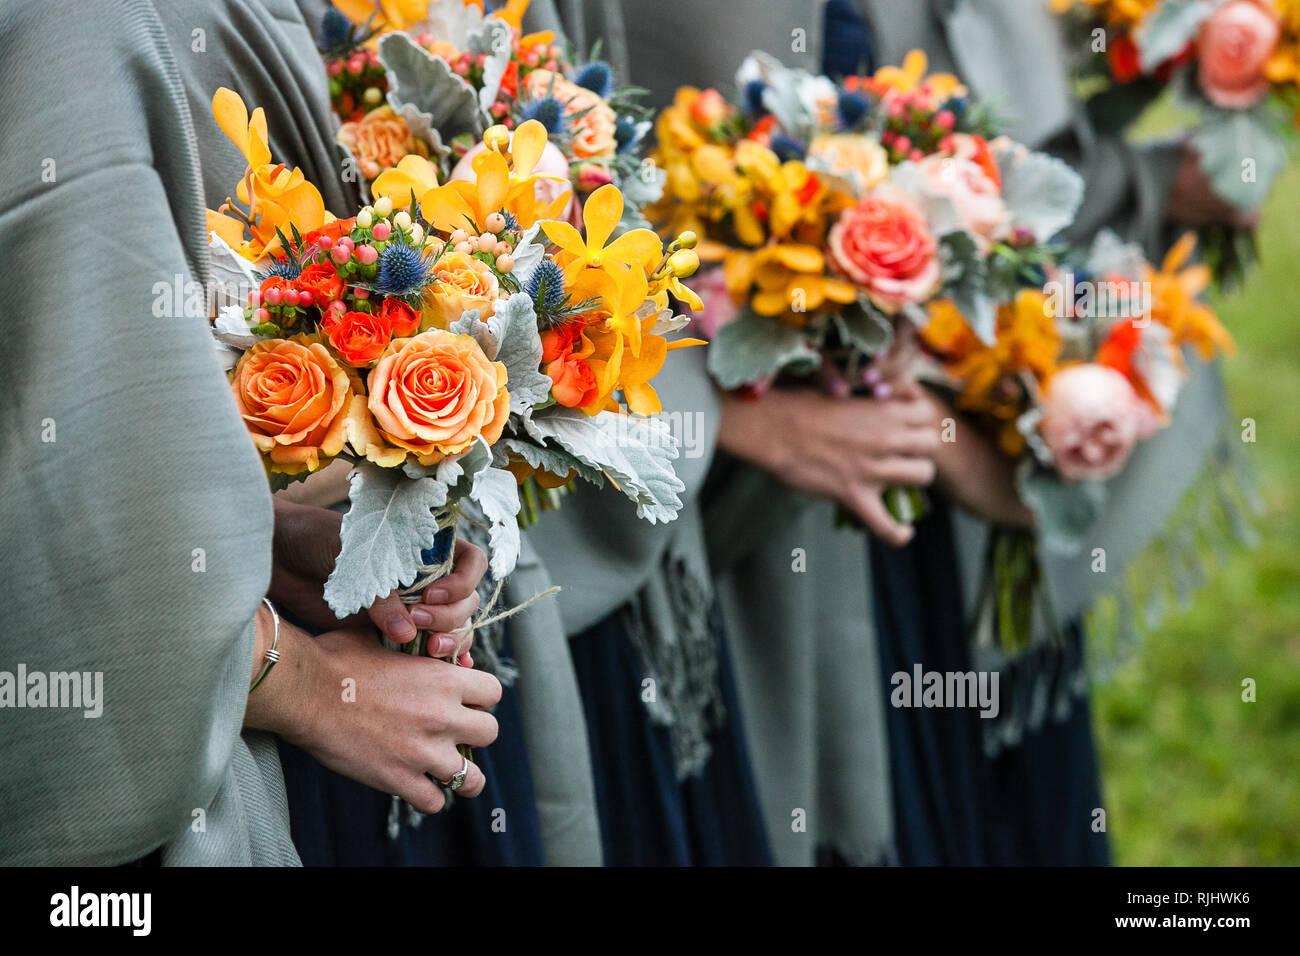 Bridesmaids Holding Their Wedding Bouquets Of Flowers With Yellow